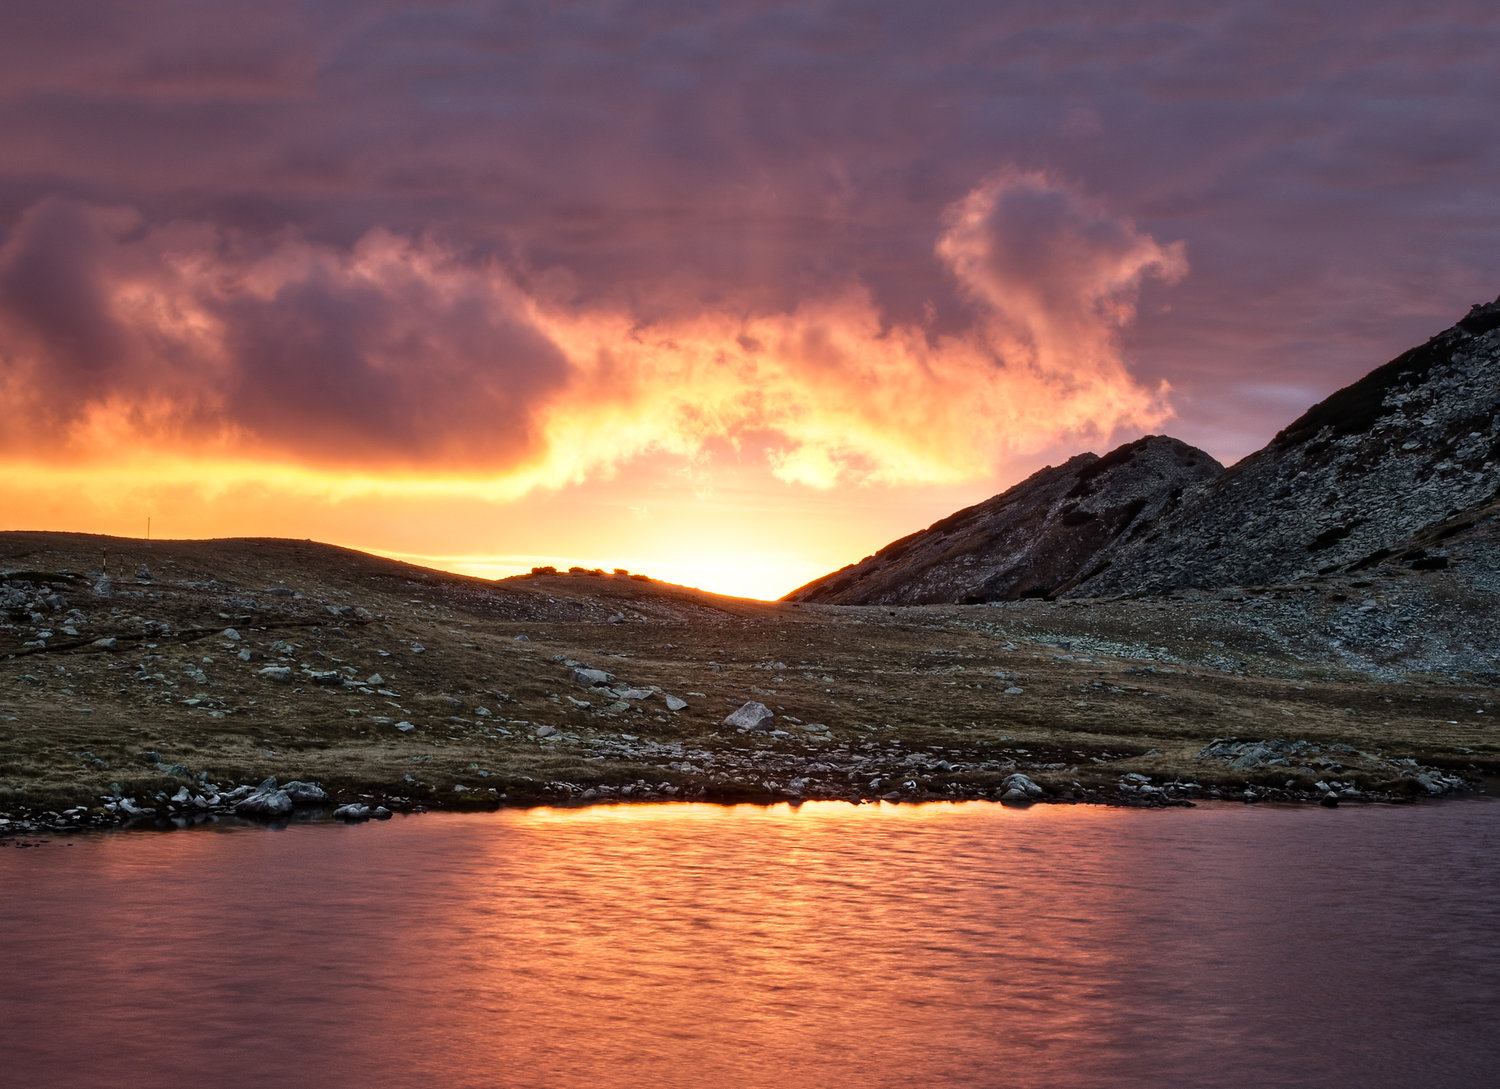 pirin_belemeto-lake-hut-5436-8-v3_sunset-on-lake.jpg